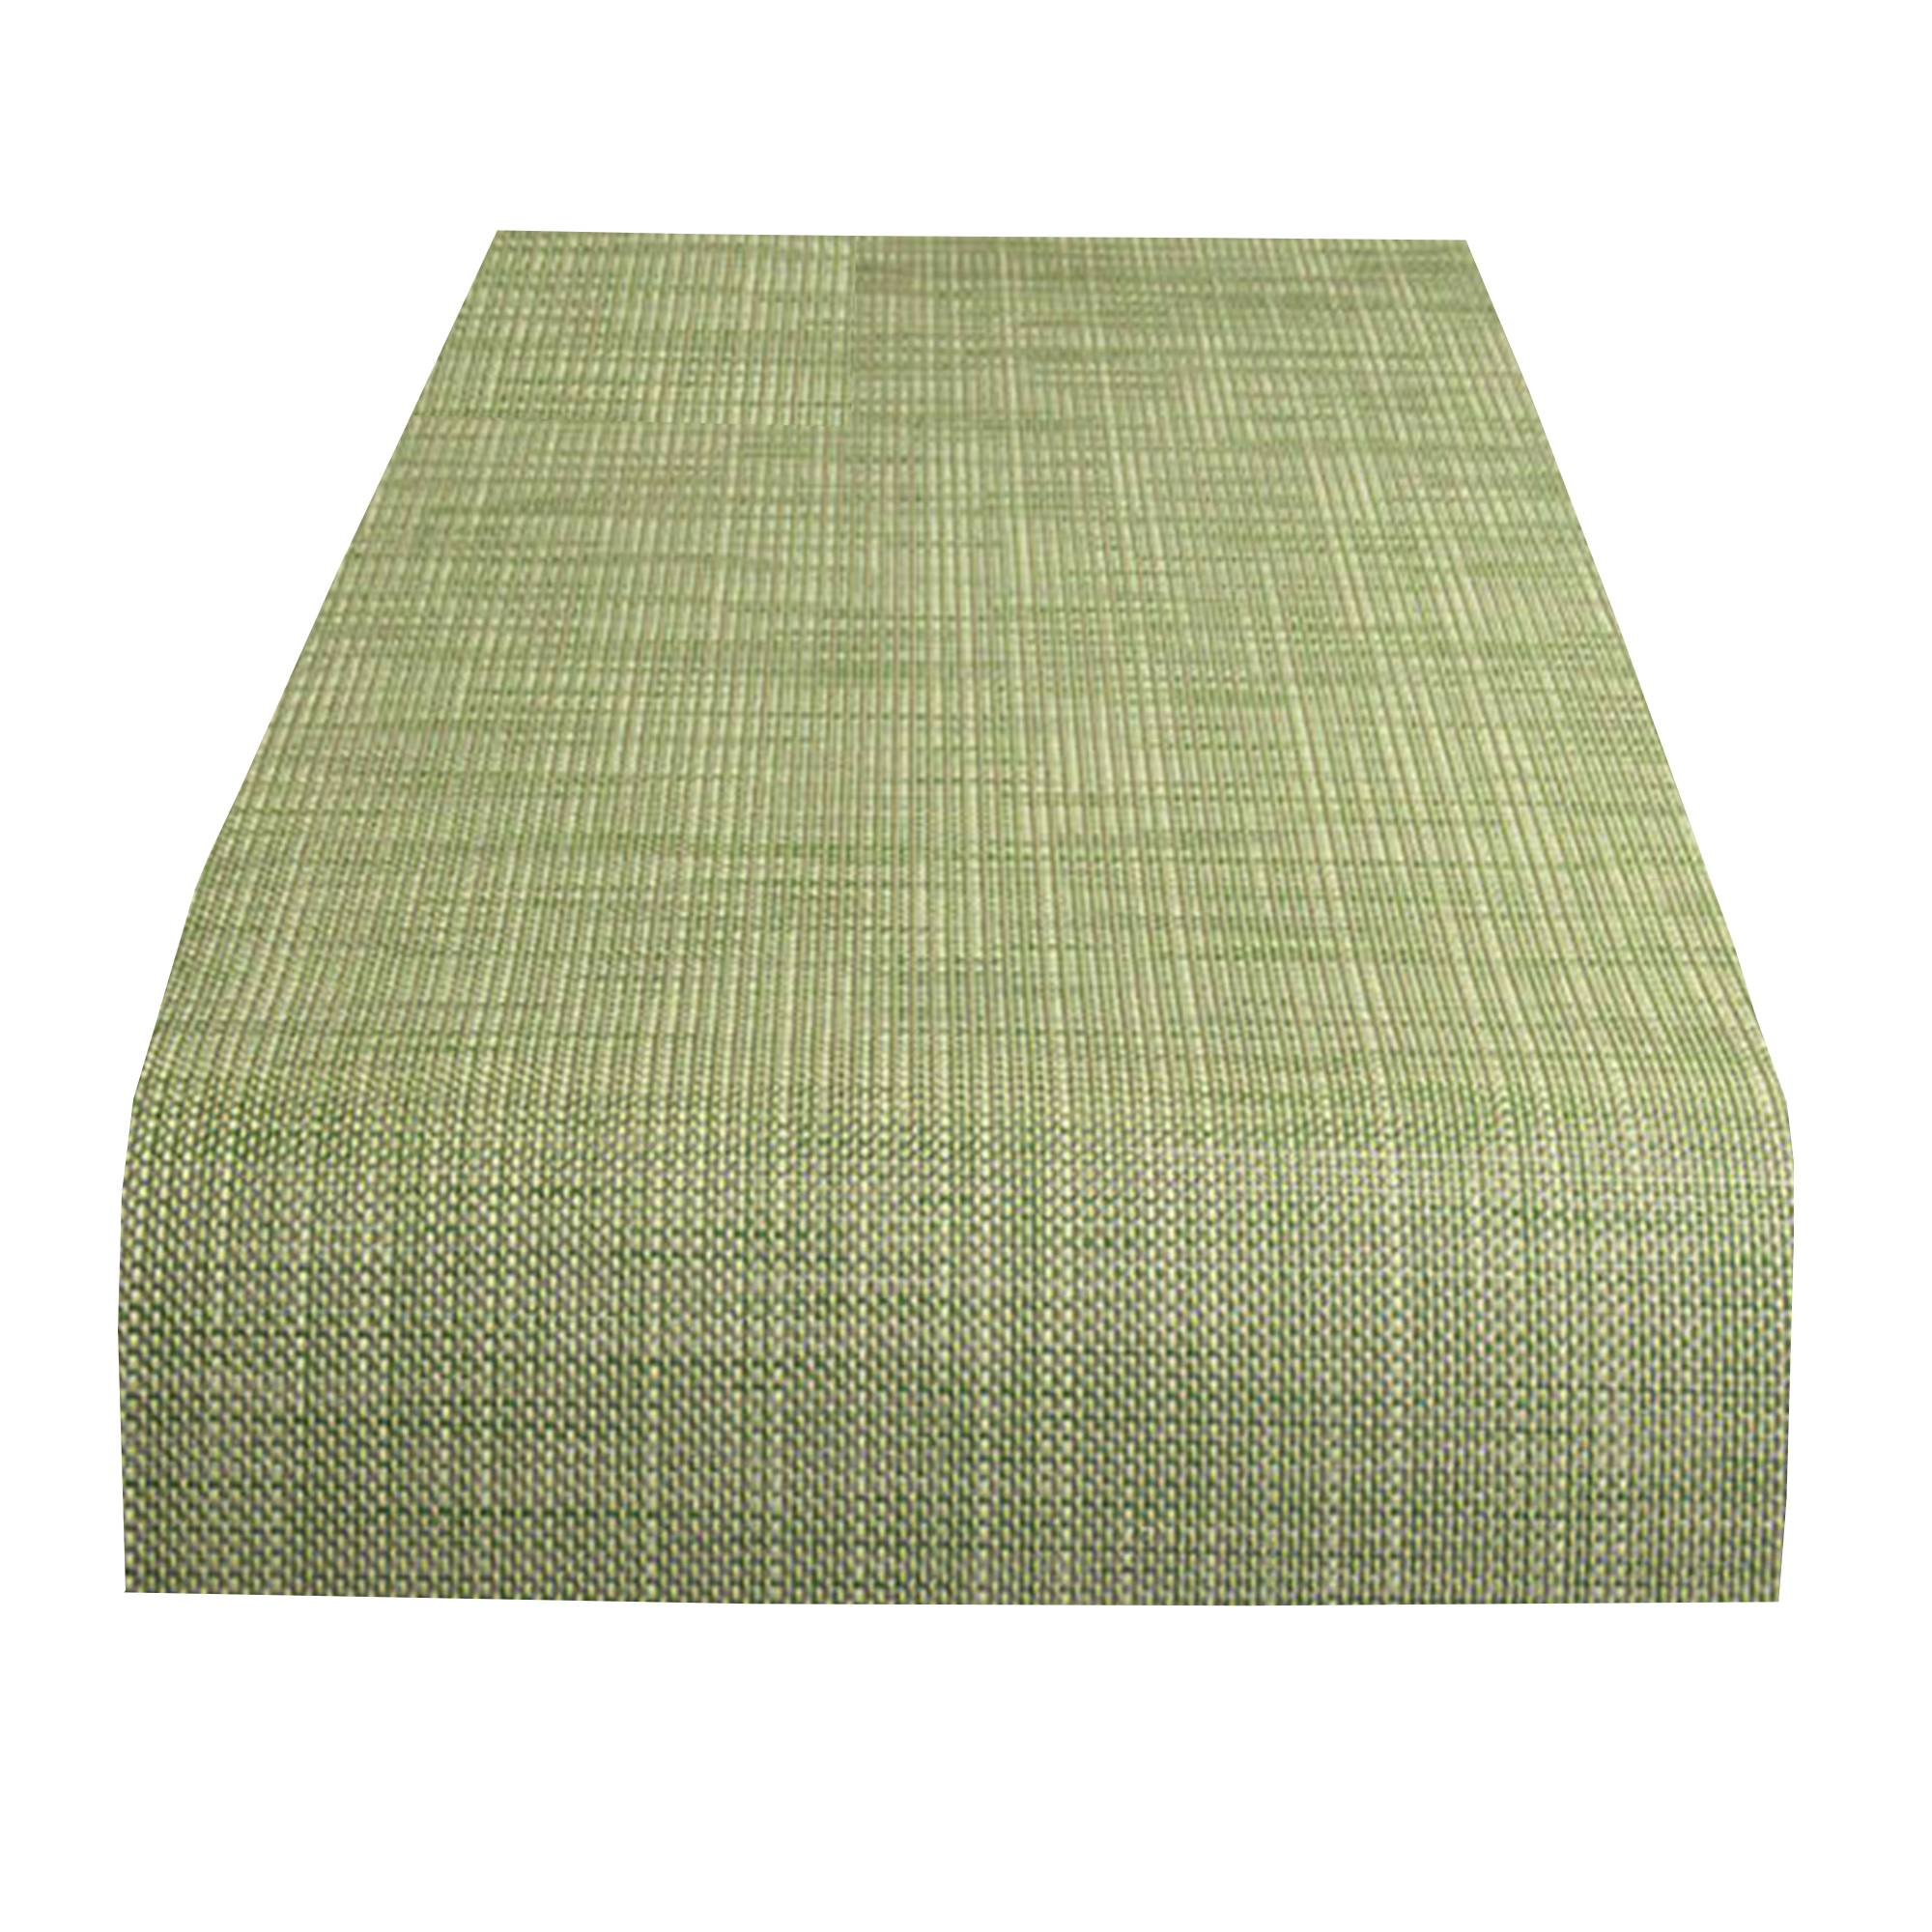 Mini Basketweave Table Runner: Dill